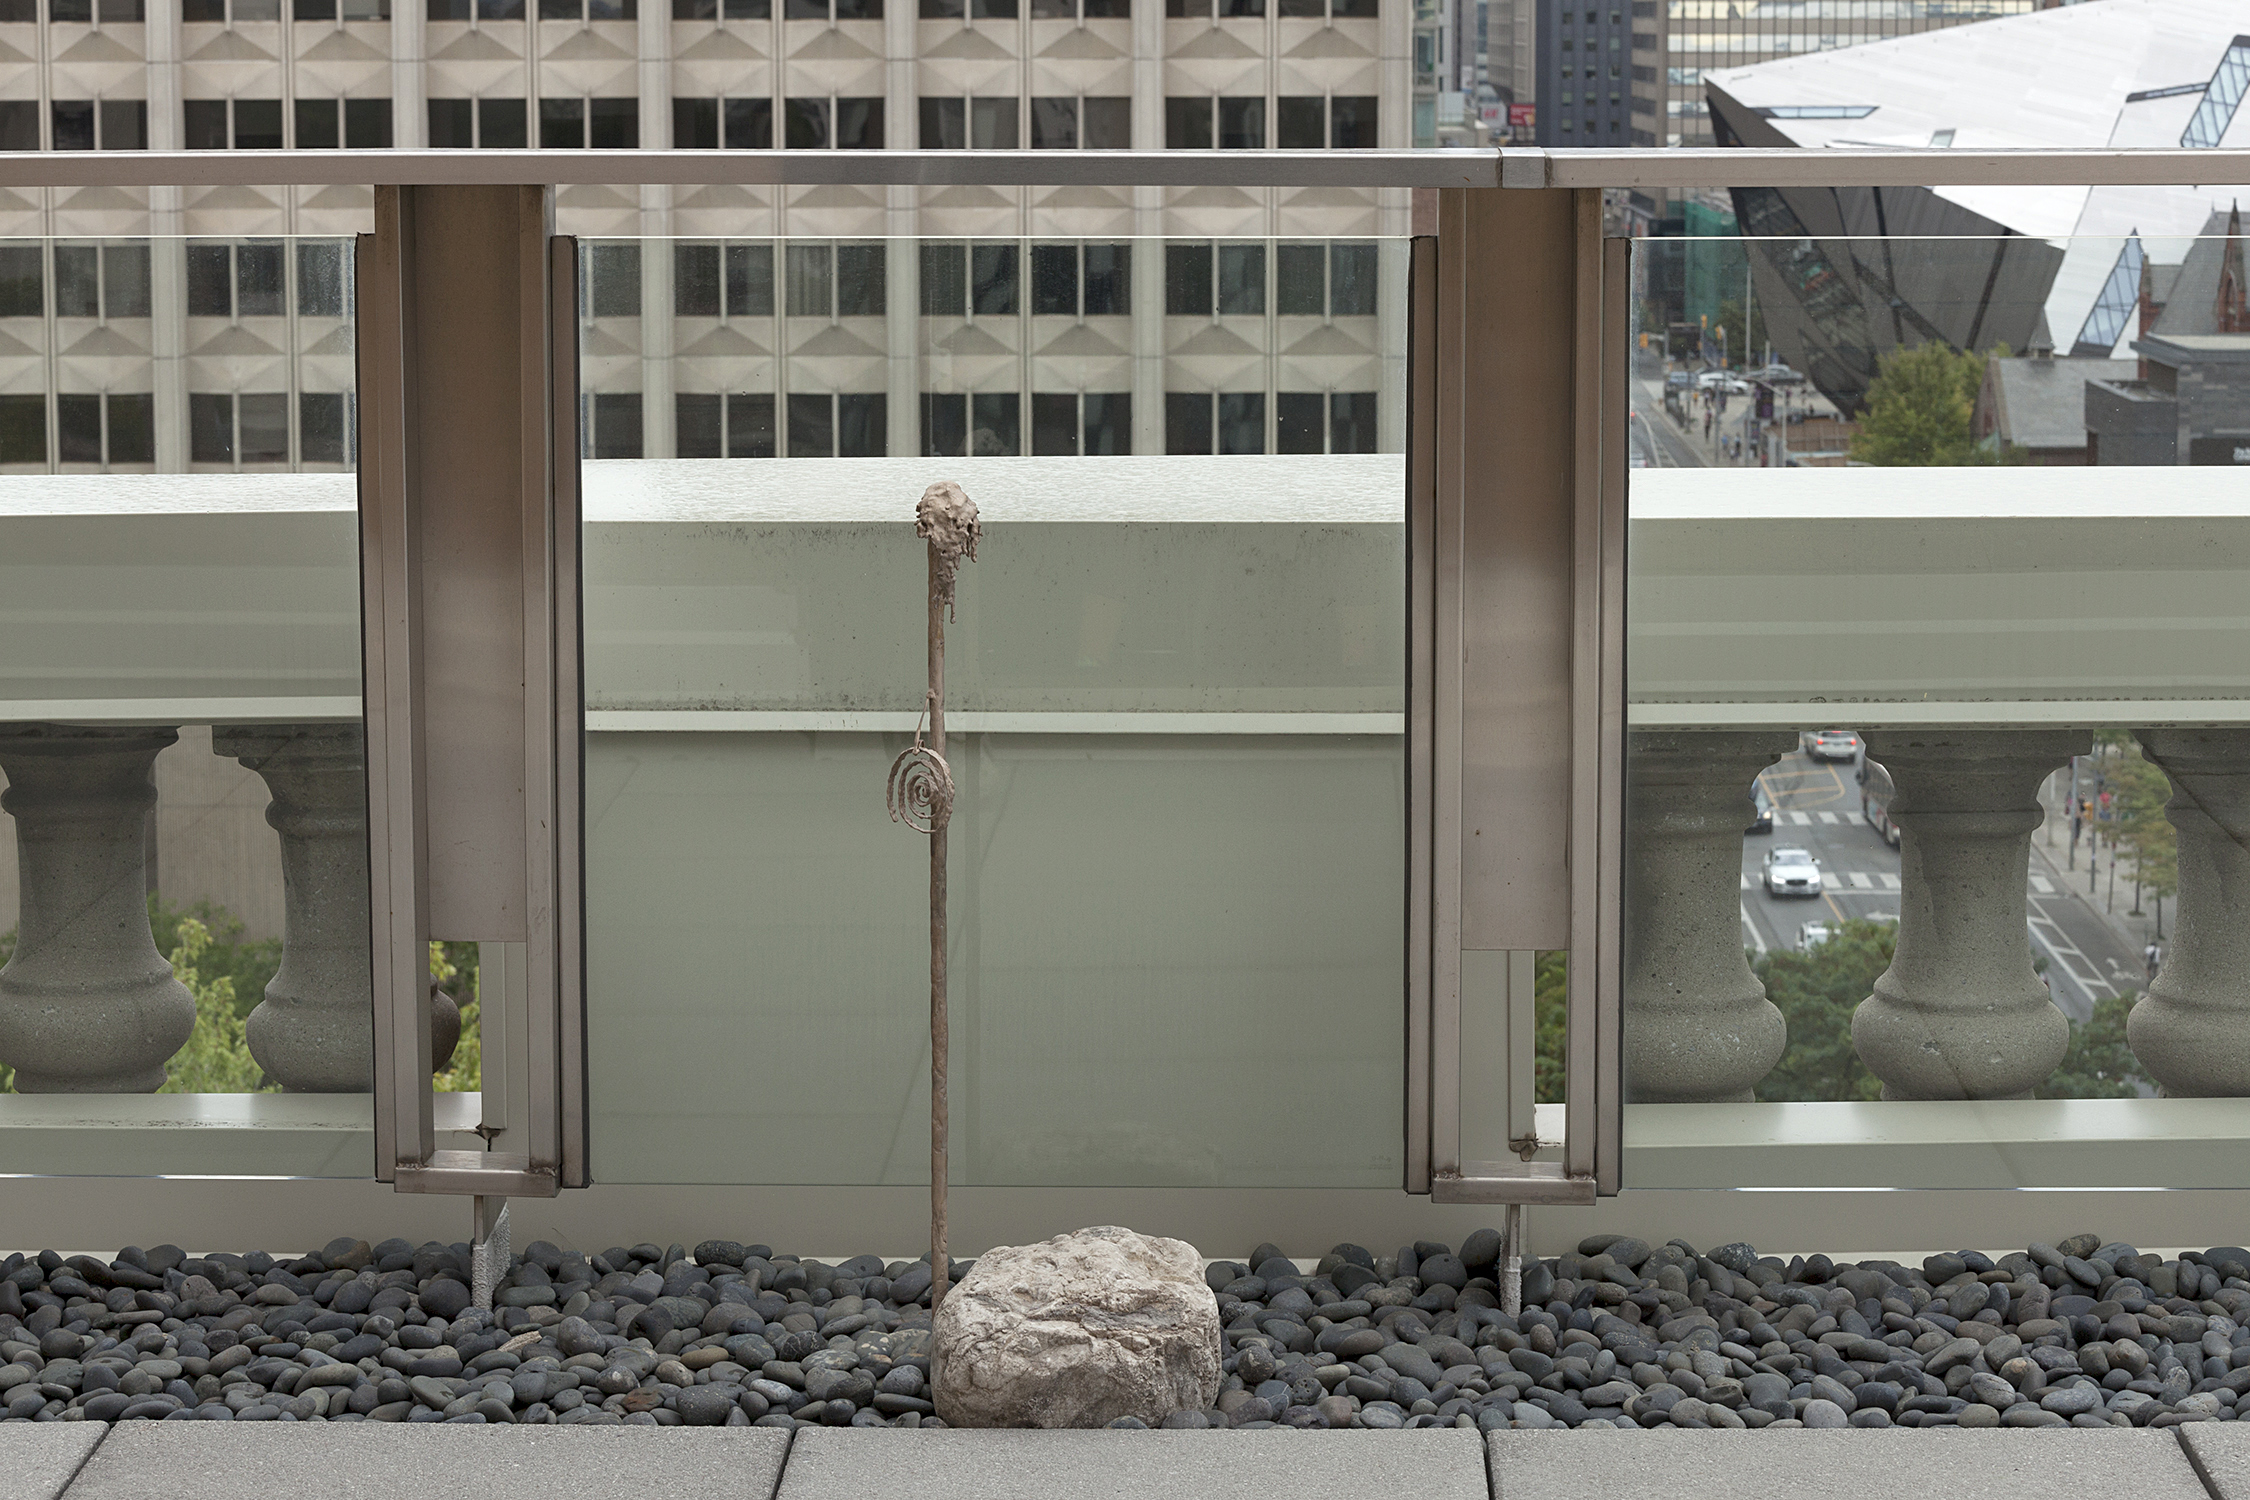 Colin Miner, Untitled (stalactite), 2018-19 Bronze casts, rock, and risographic prints. Dimensions variable